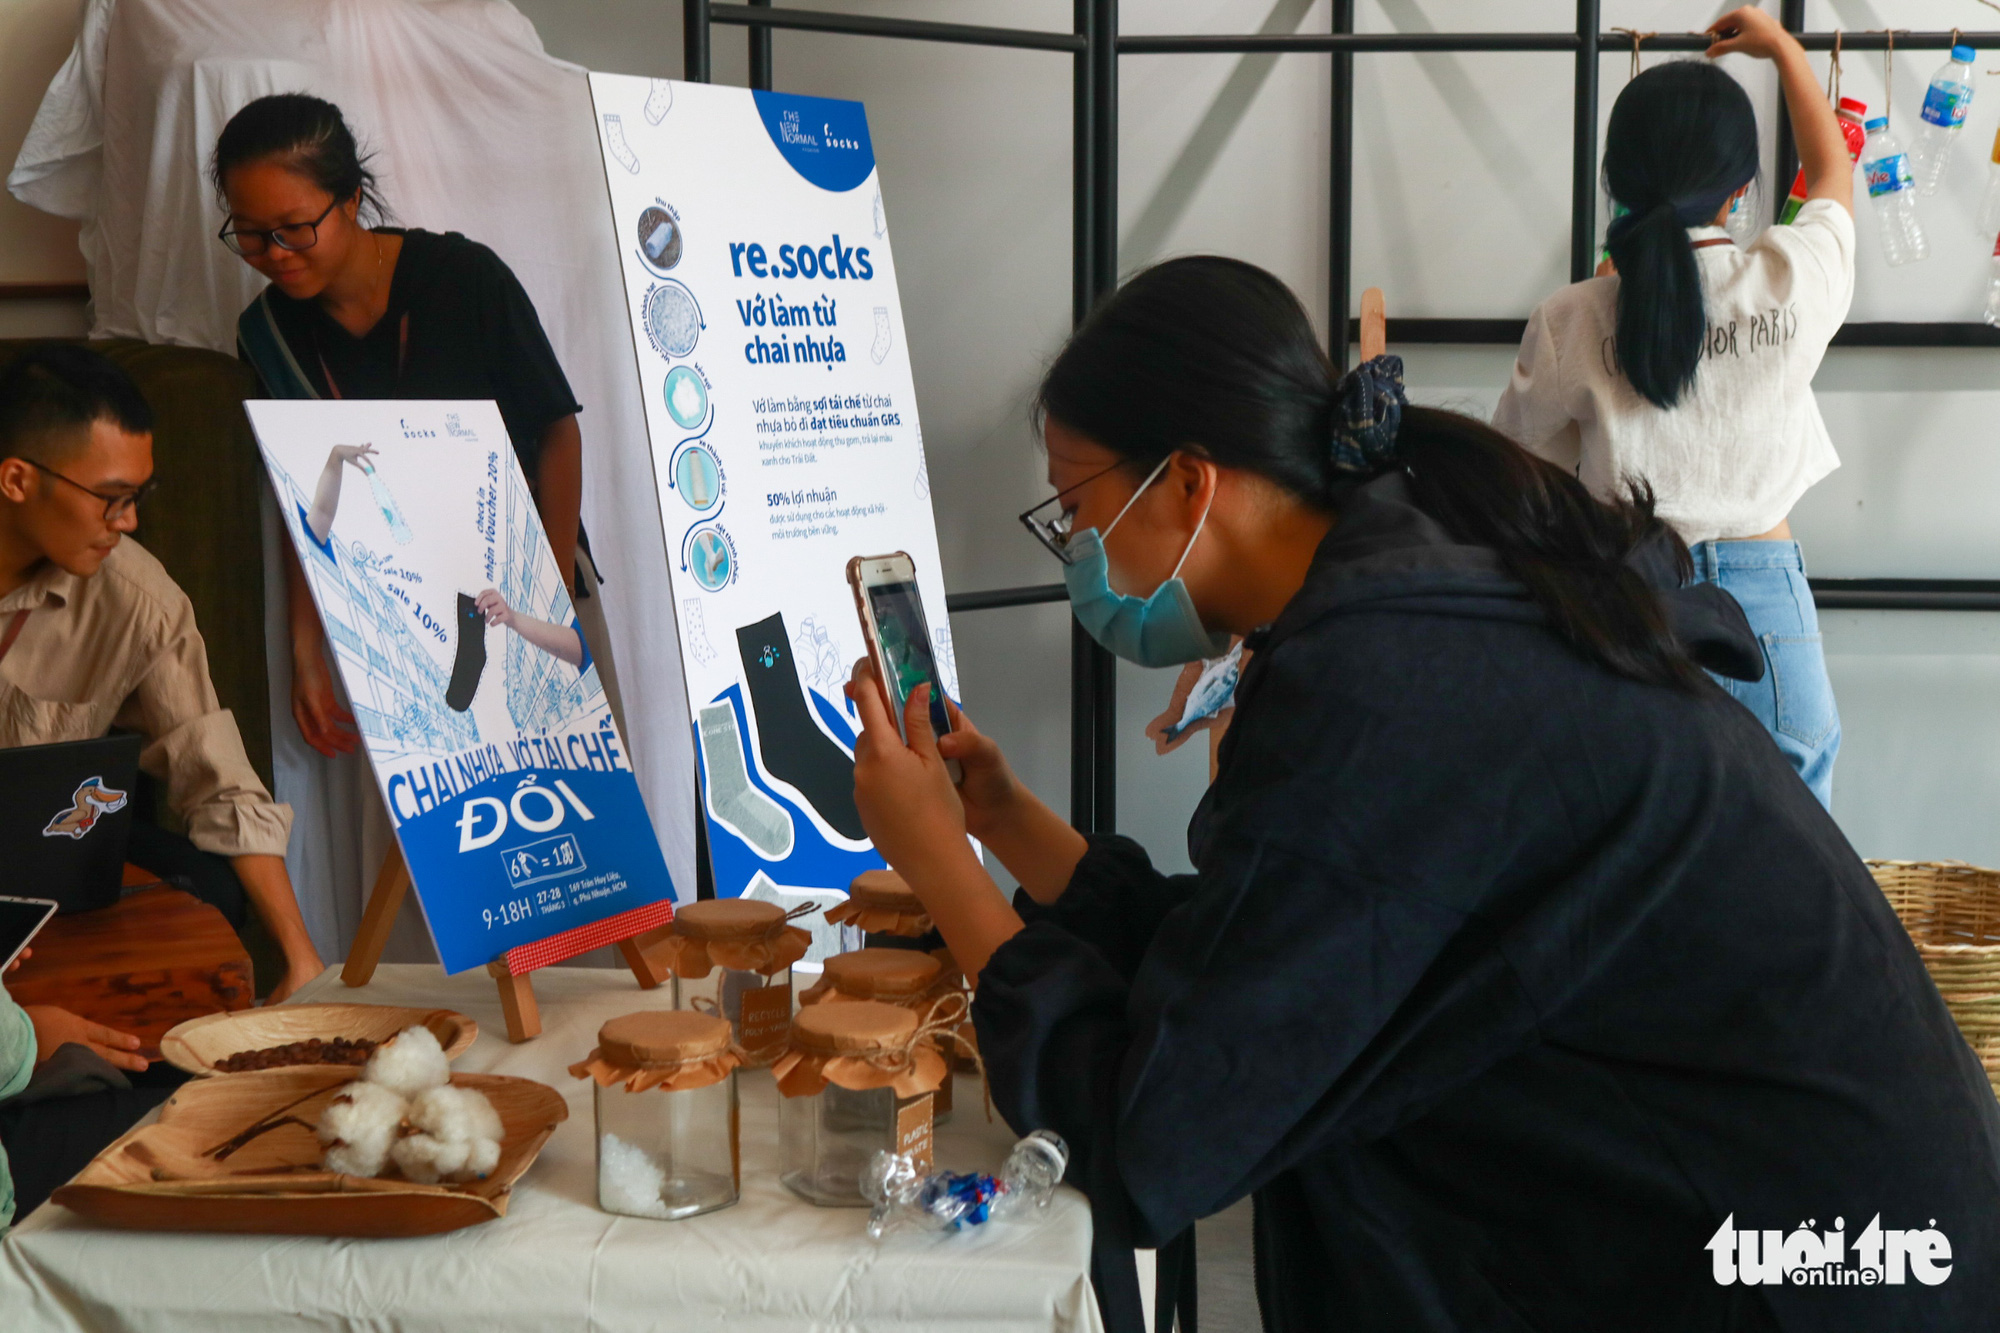 Young Vietnamese introduce socks made from recycled plastic bottles